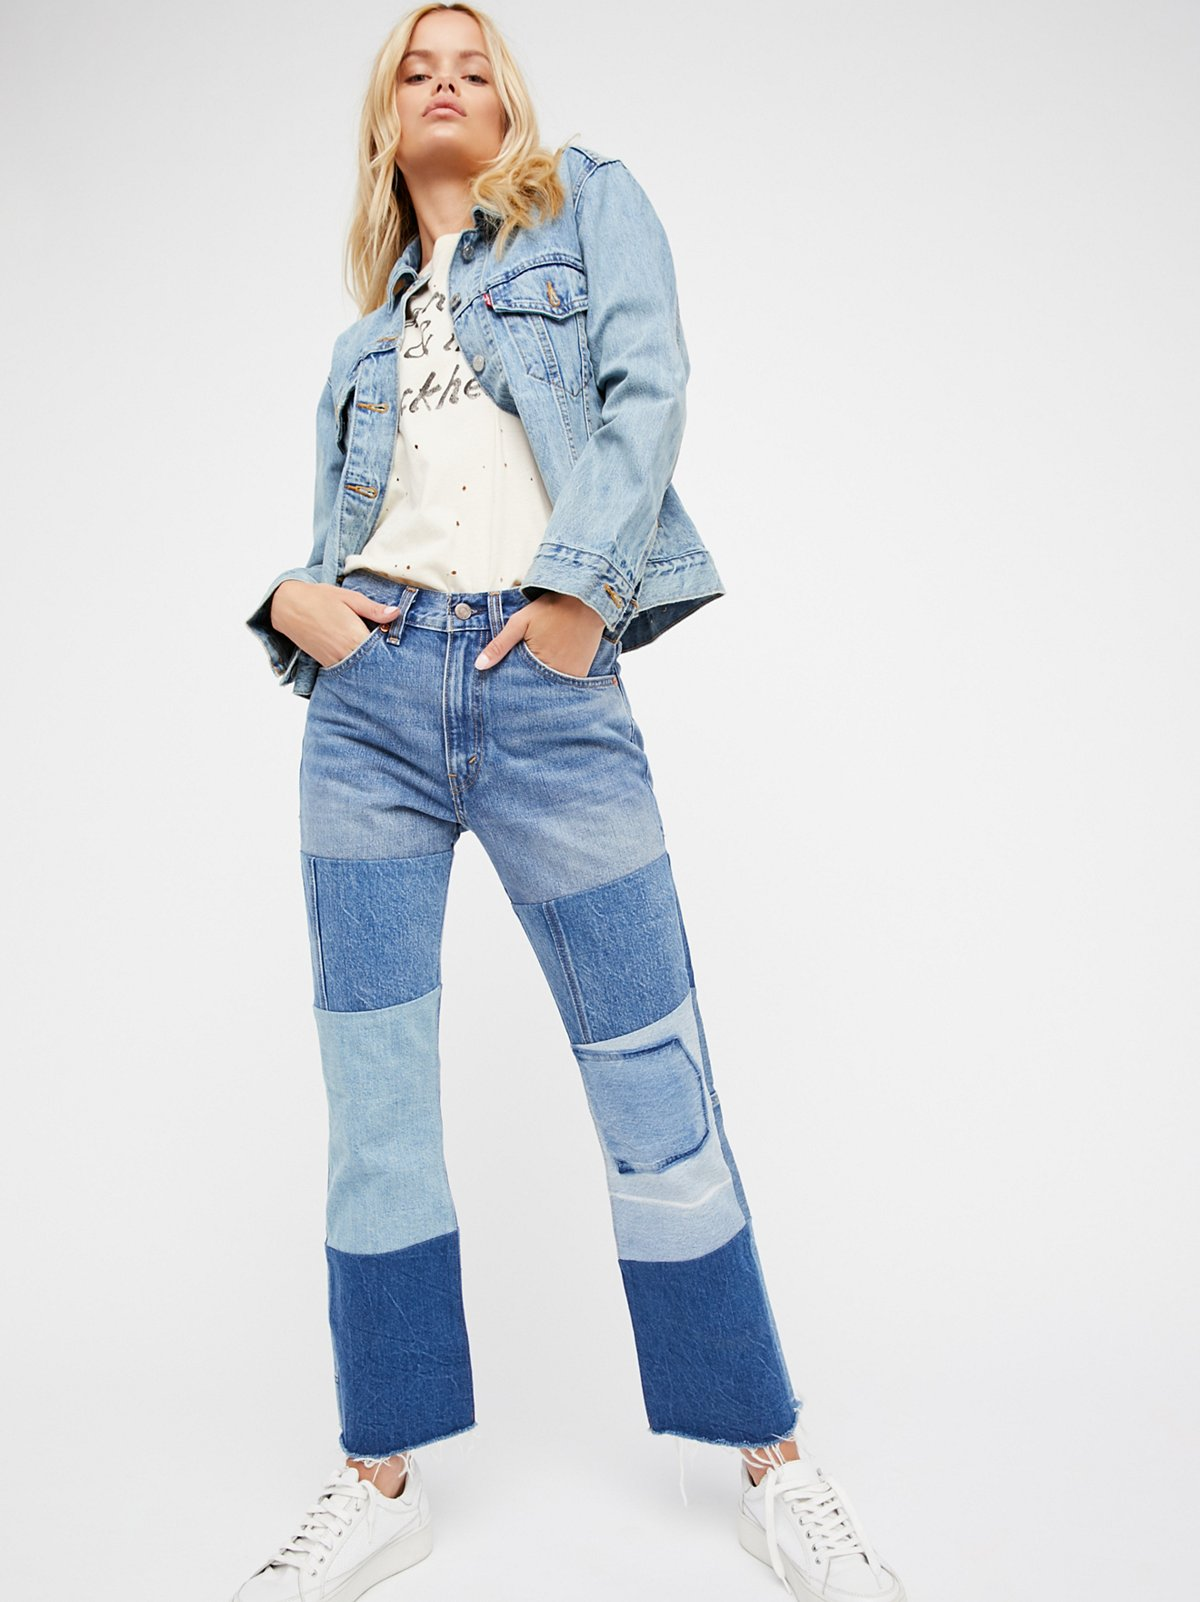 Levi's 517 Patched Boot Jeans